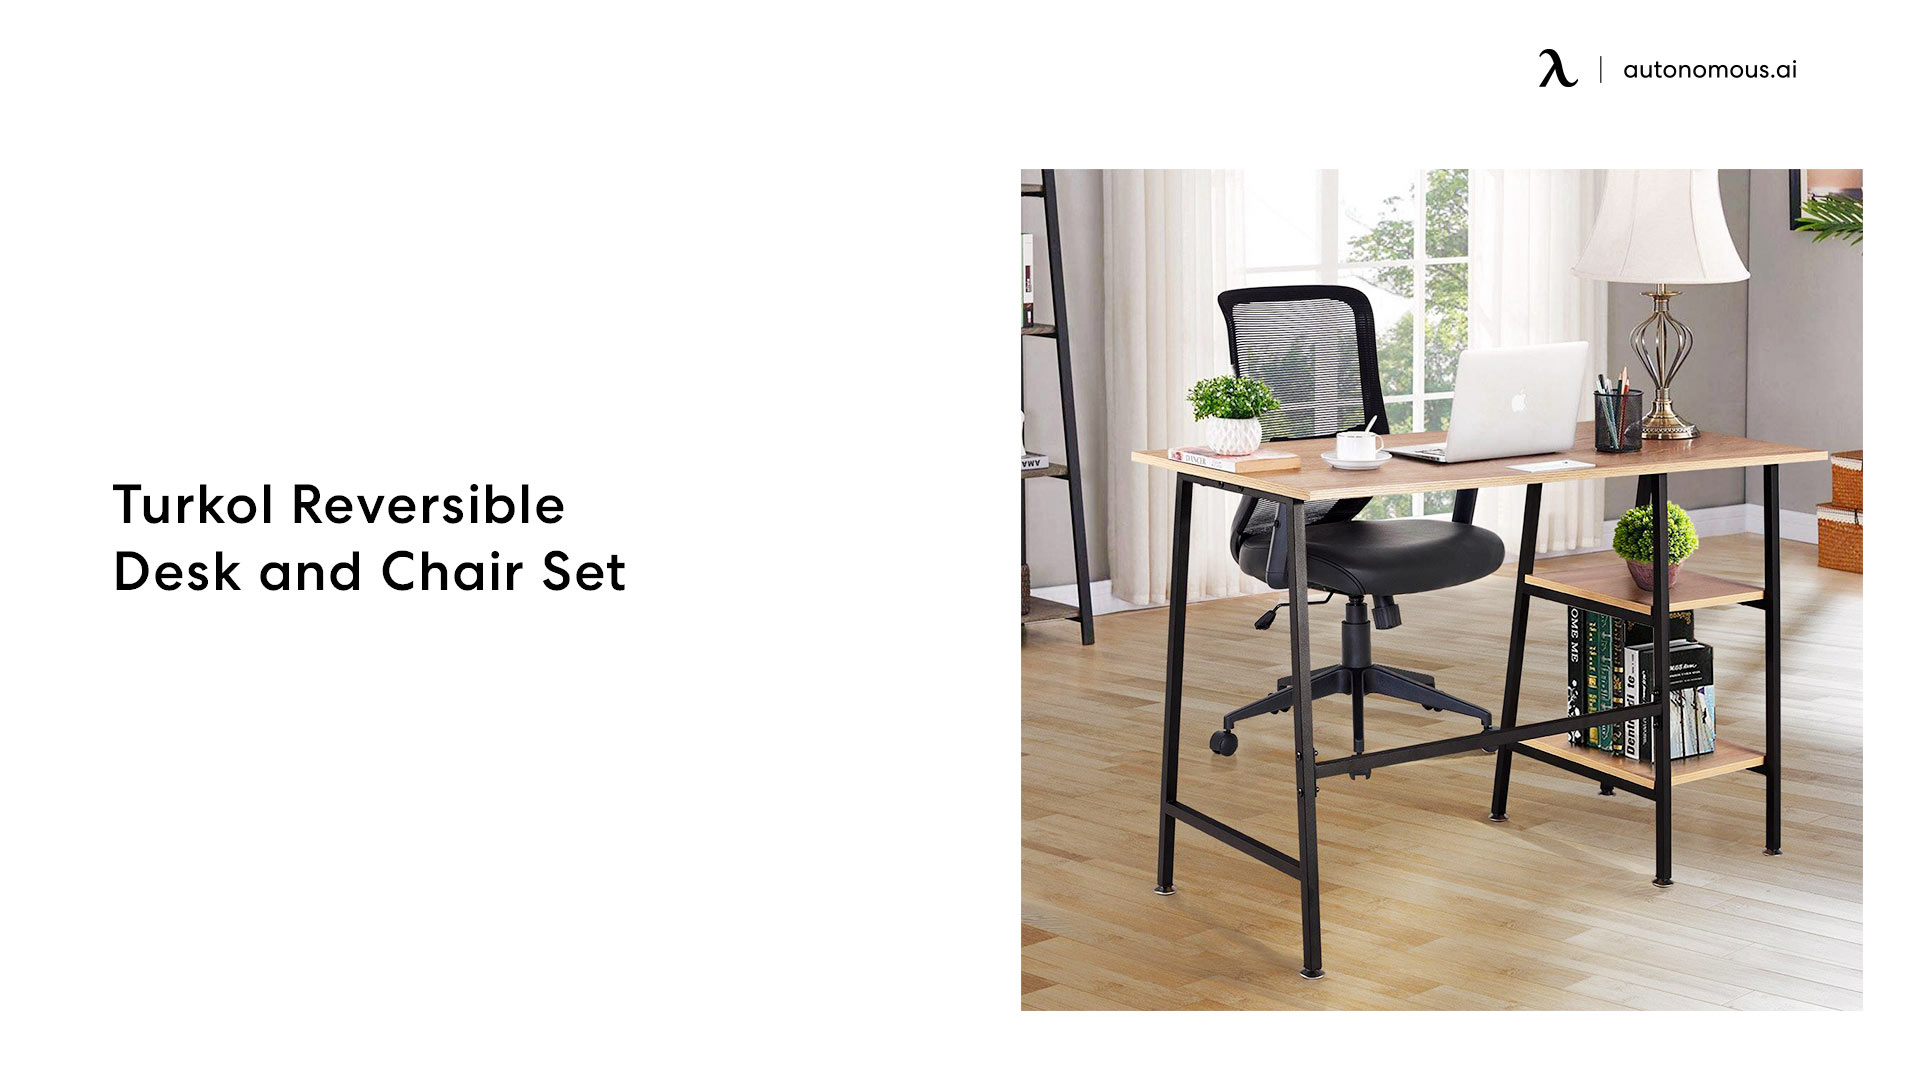 Turkol Reversible Desk and Chair Set